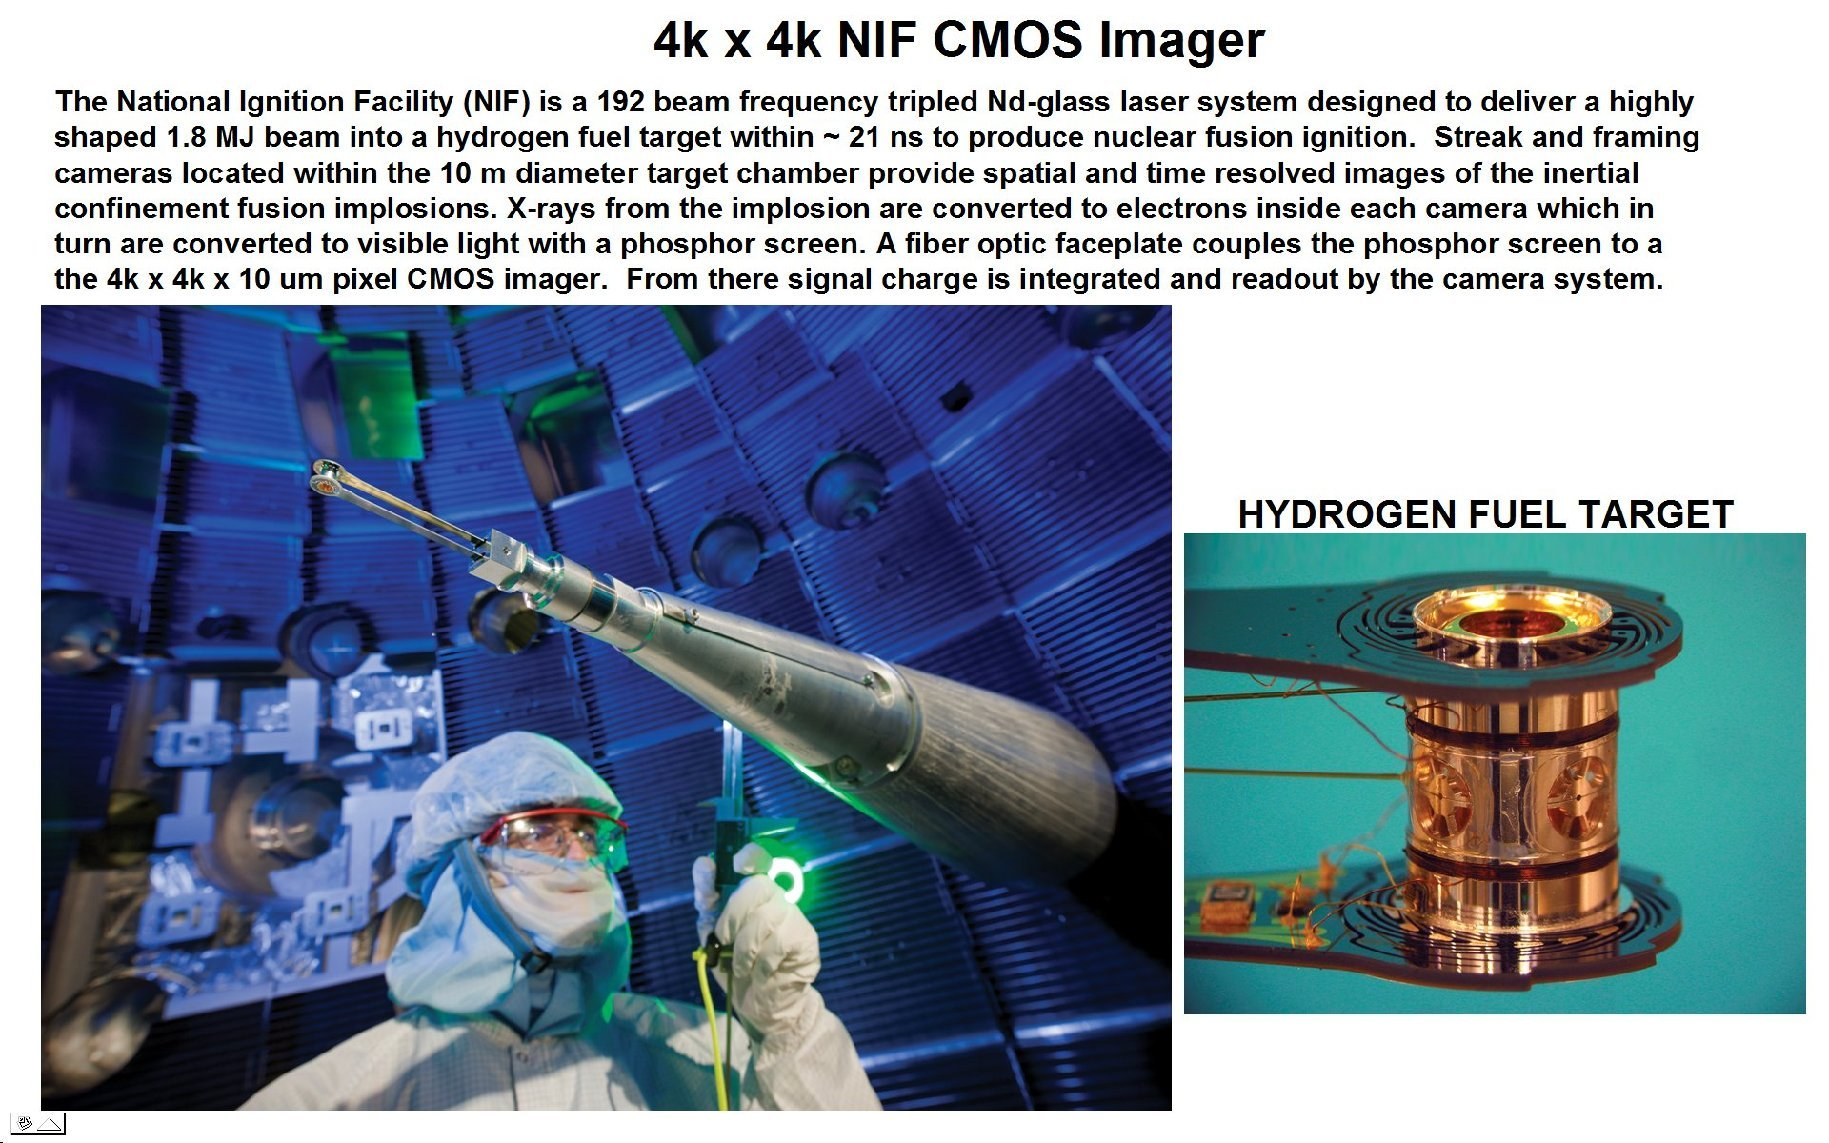 janesick 4k x 4k National Ignition Facility commercial imager